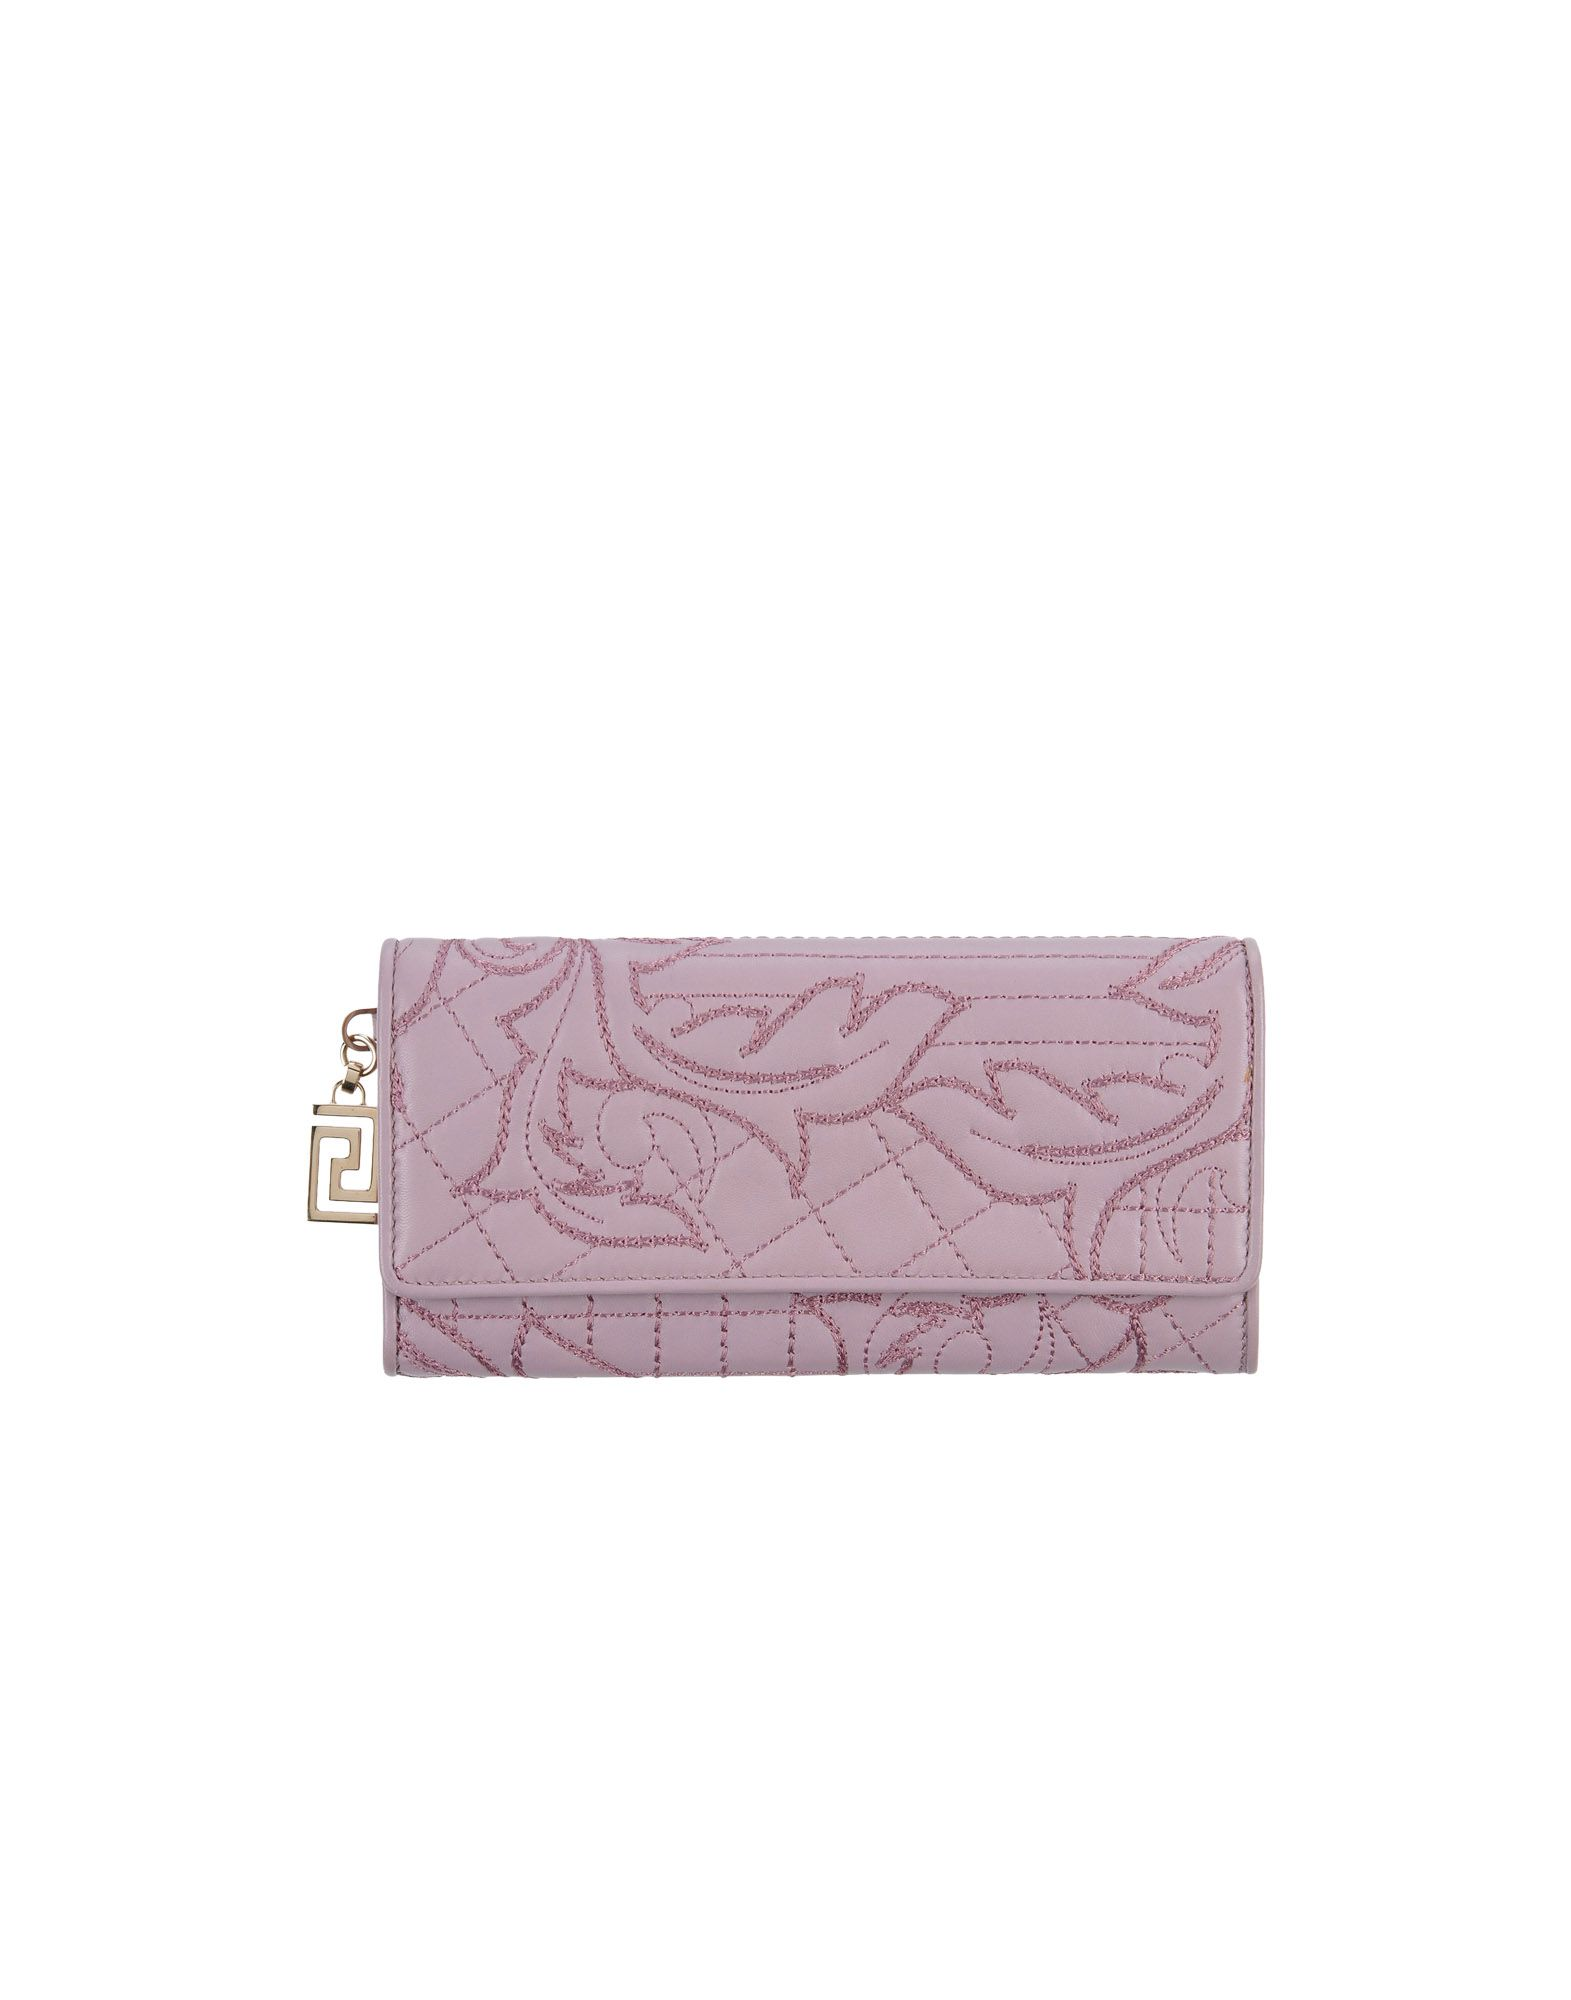 GIANNI VERSACE Wallet in Lilac